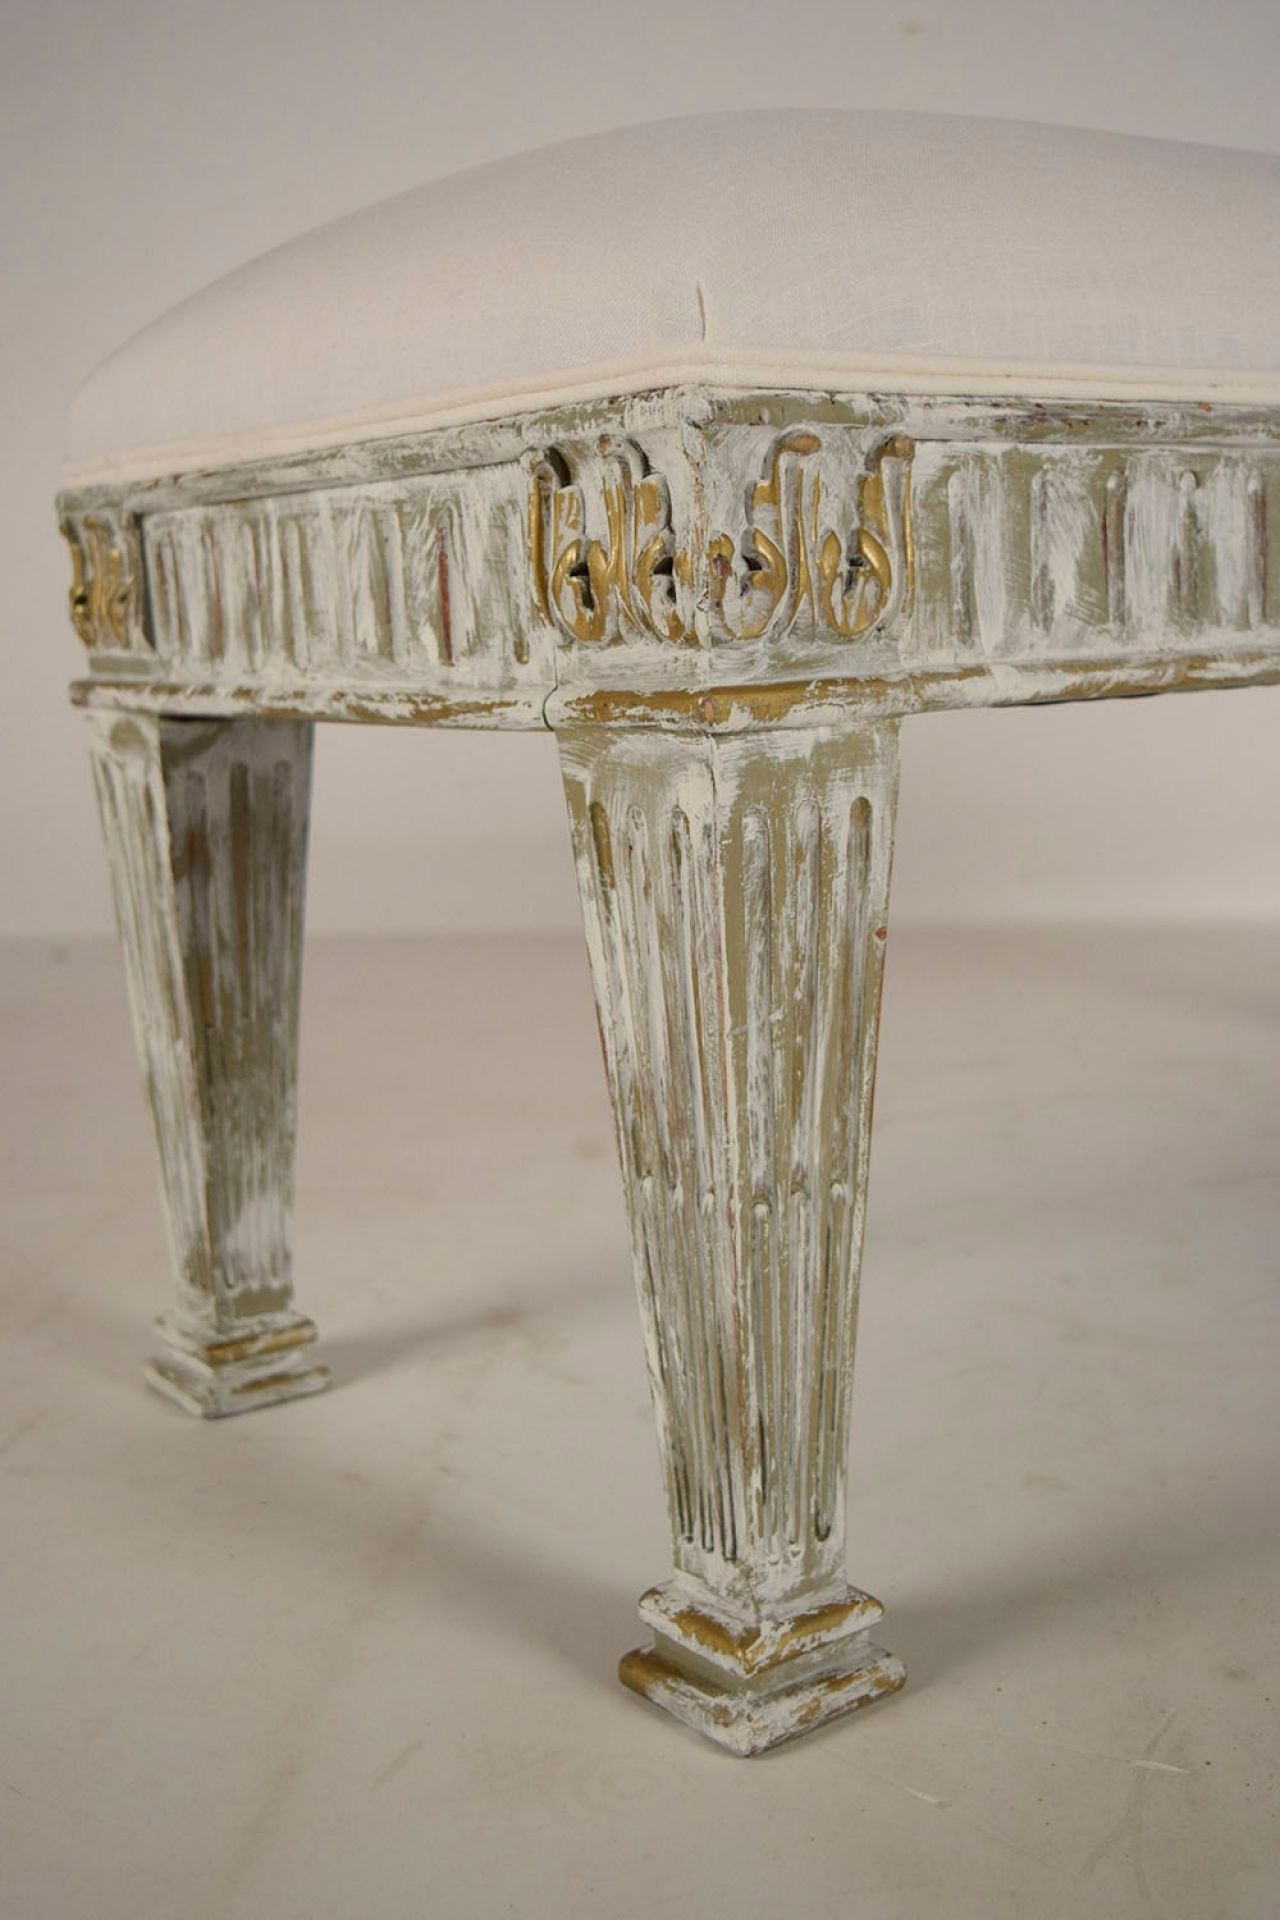 Antique Pair of French Empire-style Benches